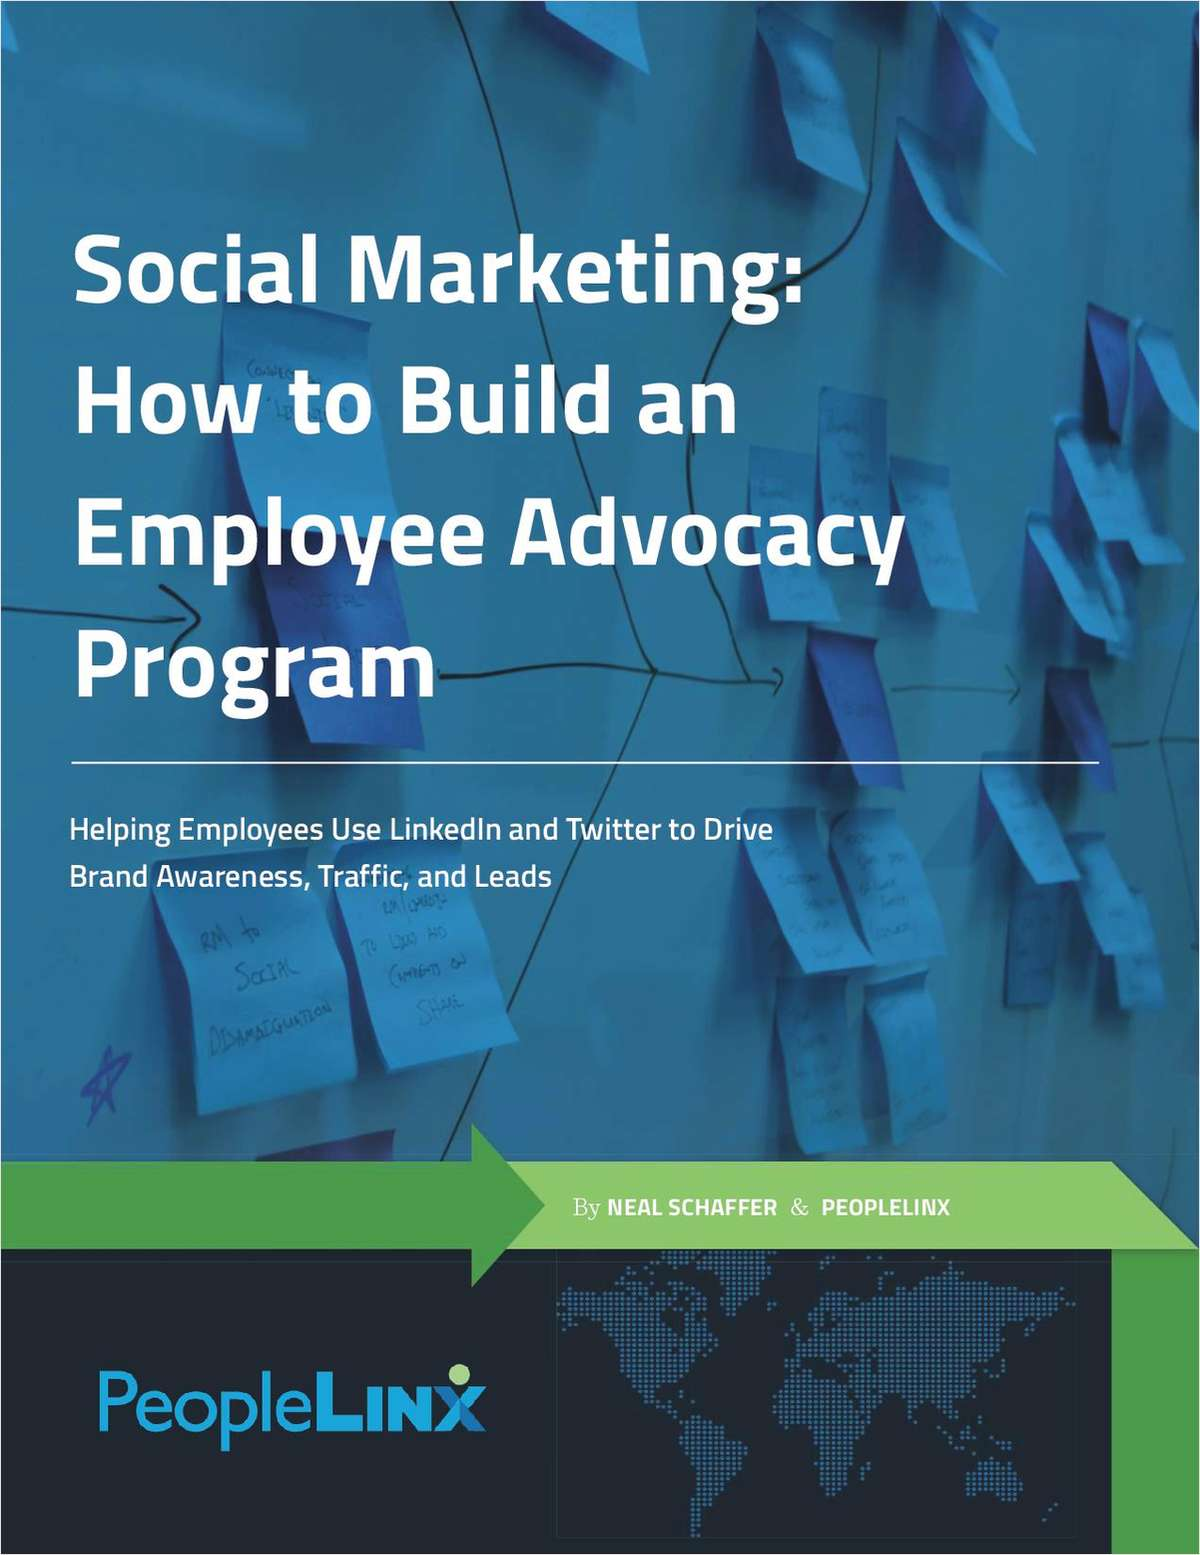 Social Marketing: How to Build an Employee Advocacy Program